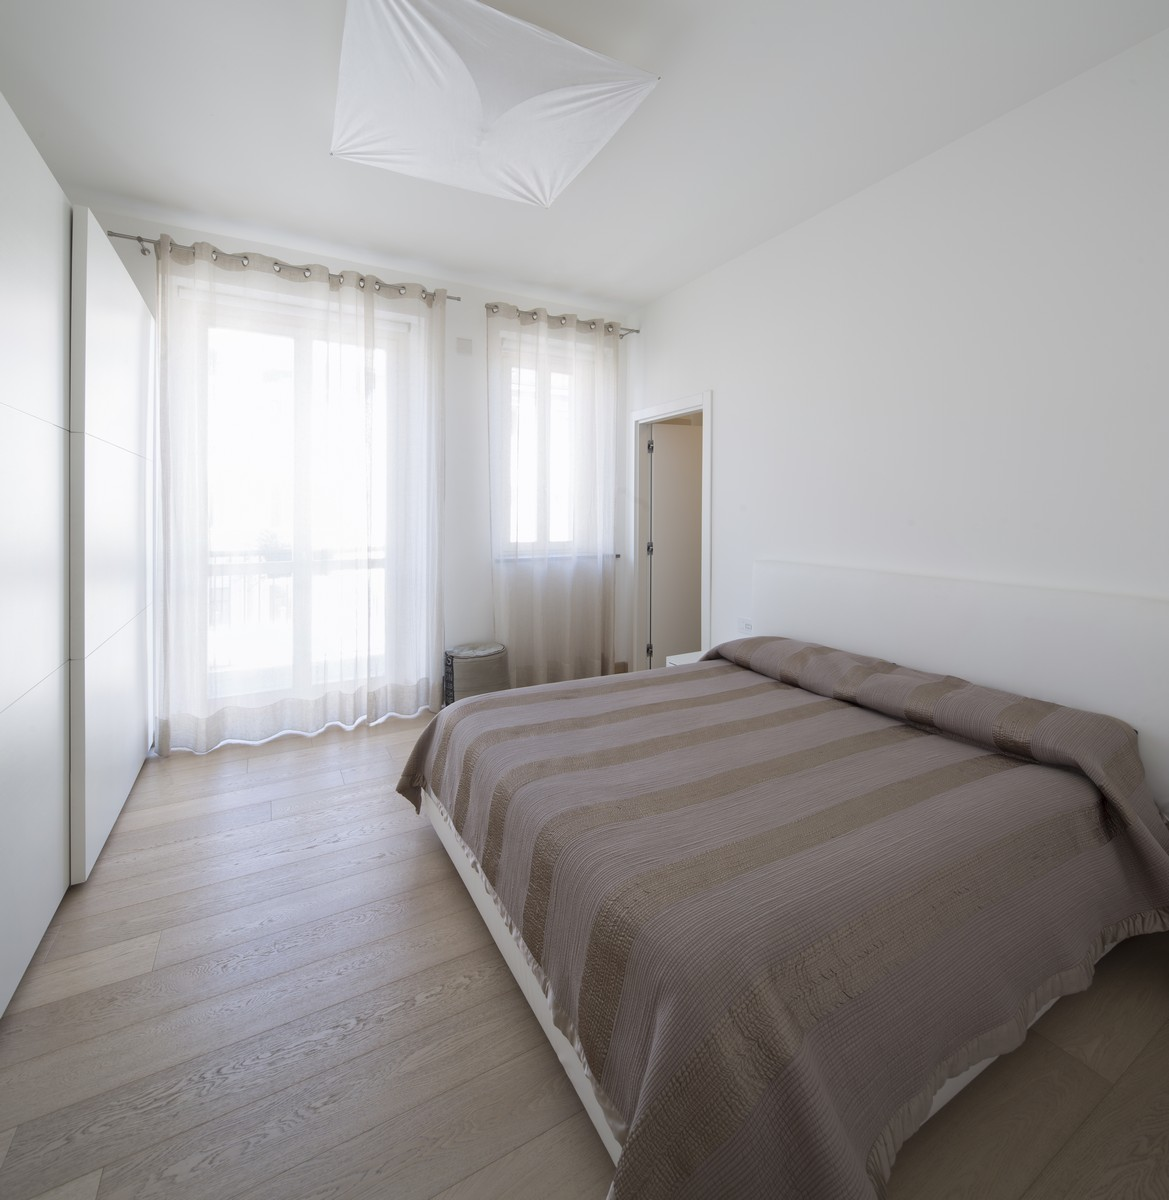 Additional photo for property listing at Exclusive Apartment a short walk from Piazza San Carlo Via Alfieri Turin, Turin 10121 Italien